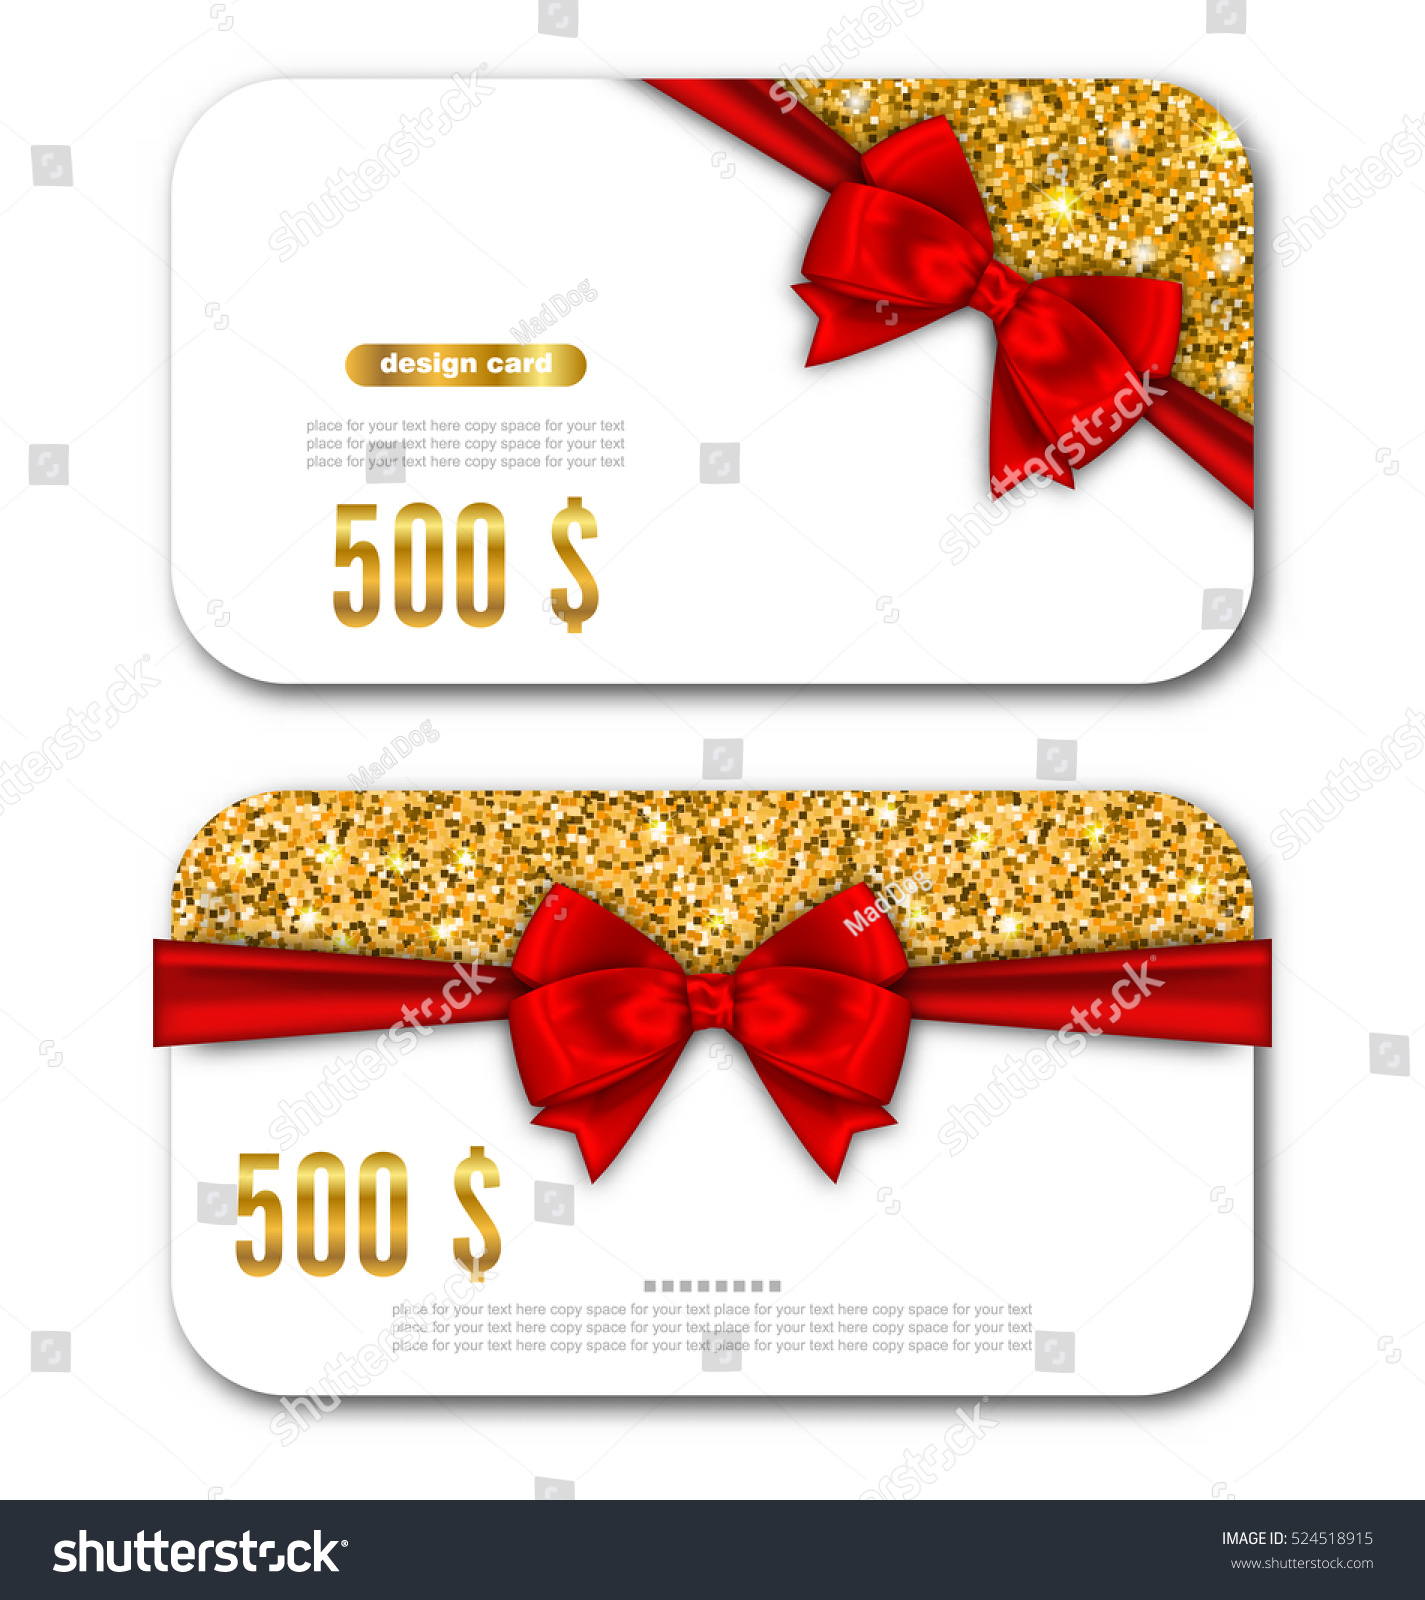 illustration gift card template golden dust stock vector  illustration gift card template golden dust texture and black bow ribbon design for gift